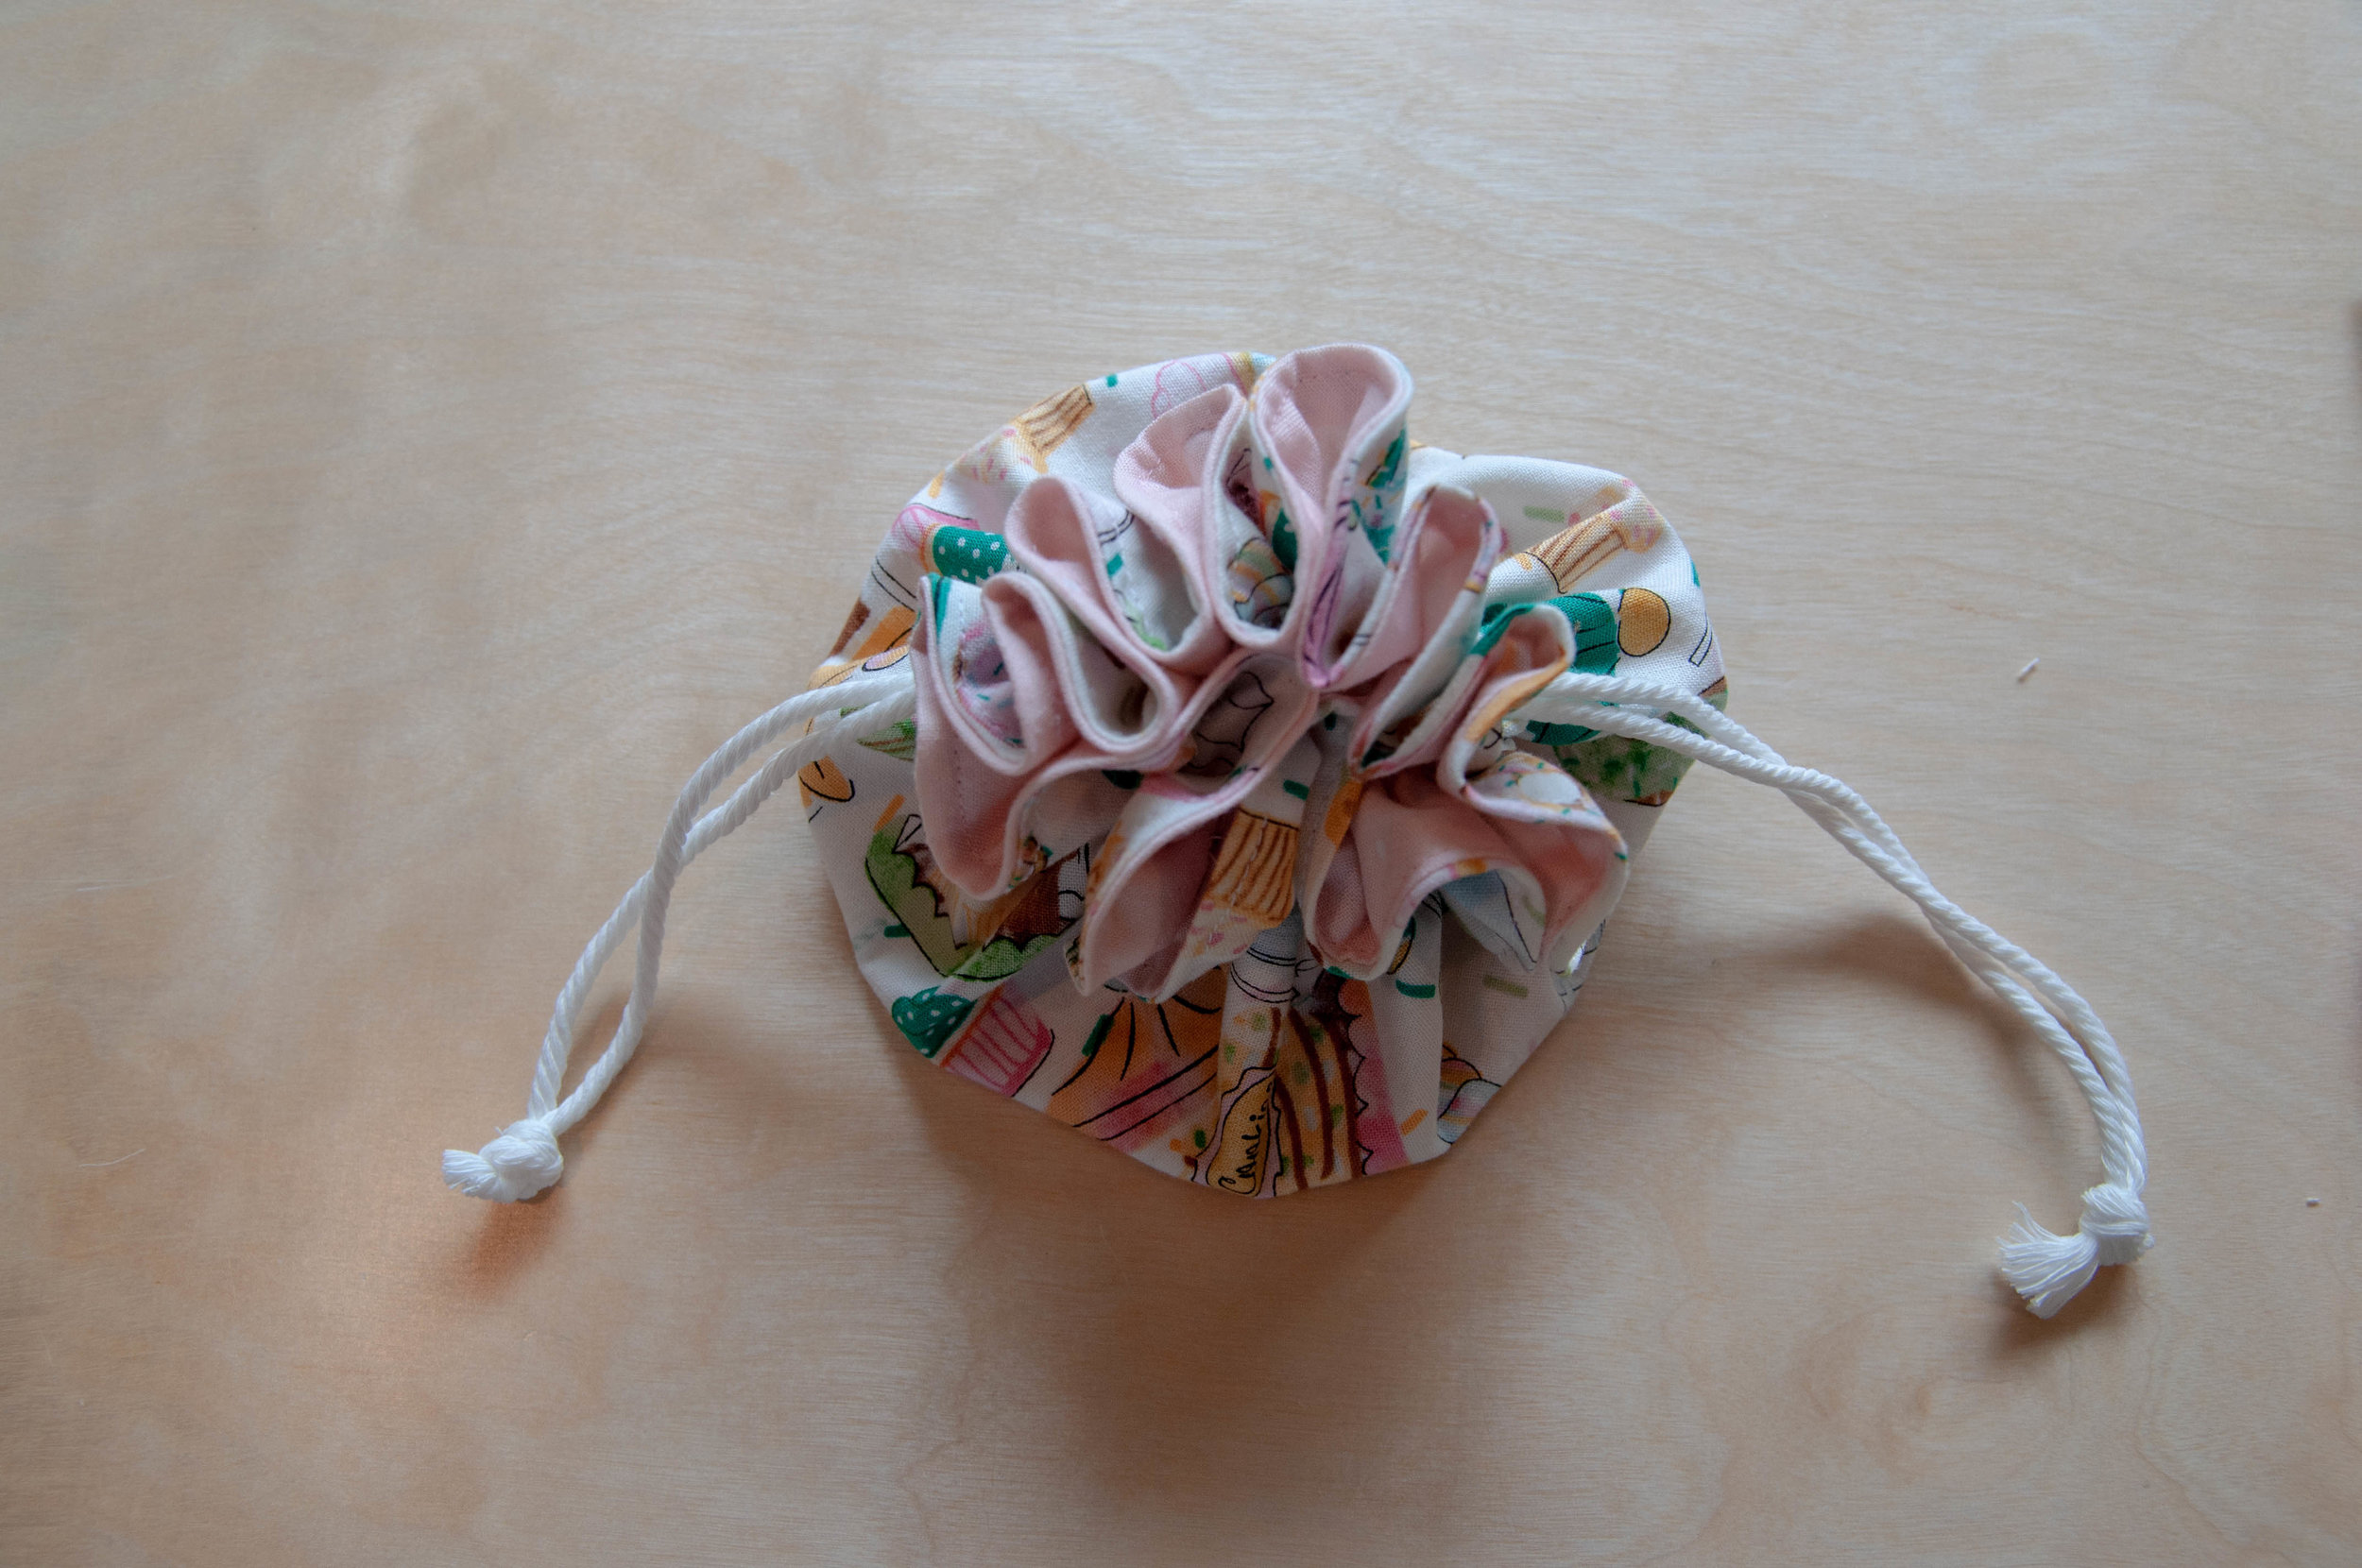 How to make a drawstring pouch, a sewing tutorial by Nikki at Pin, Cut, Sew Studio